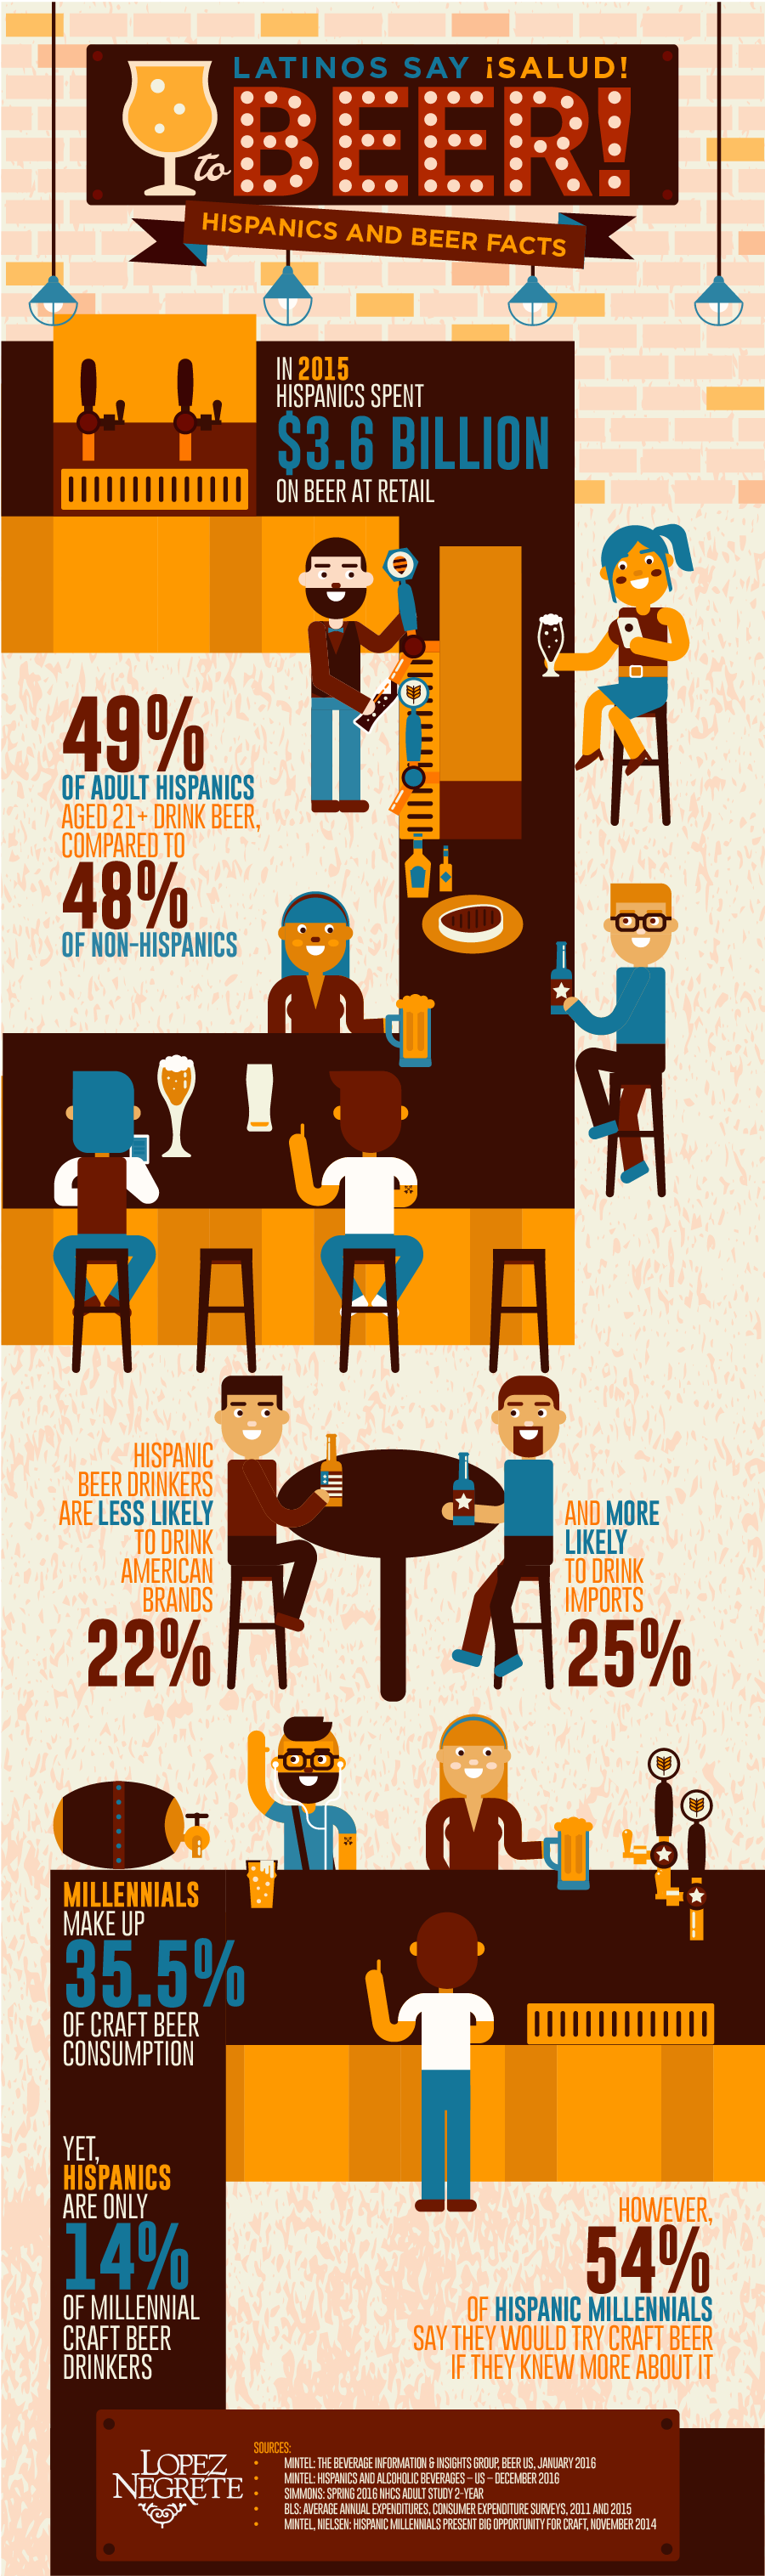 hispanics-and-beer-infographic-for-beer-day-on-april-7